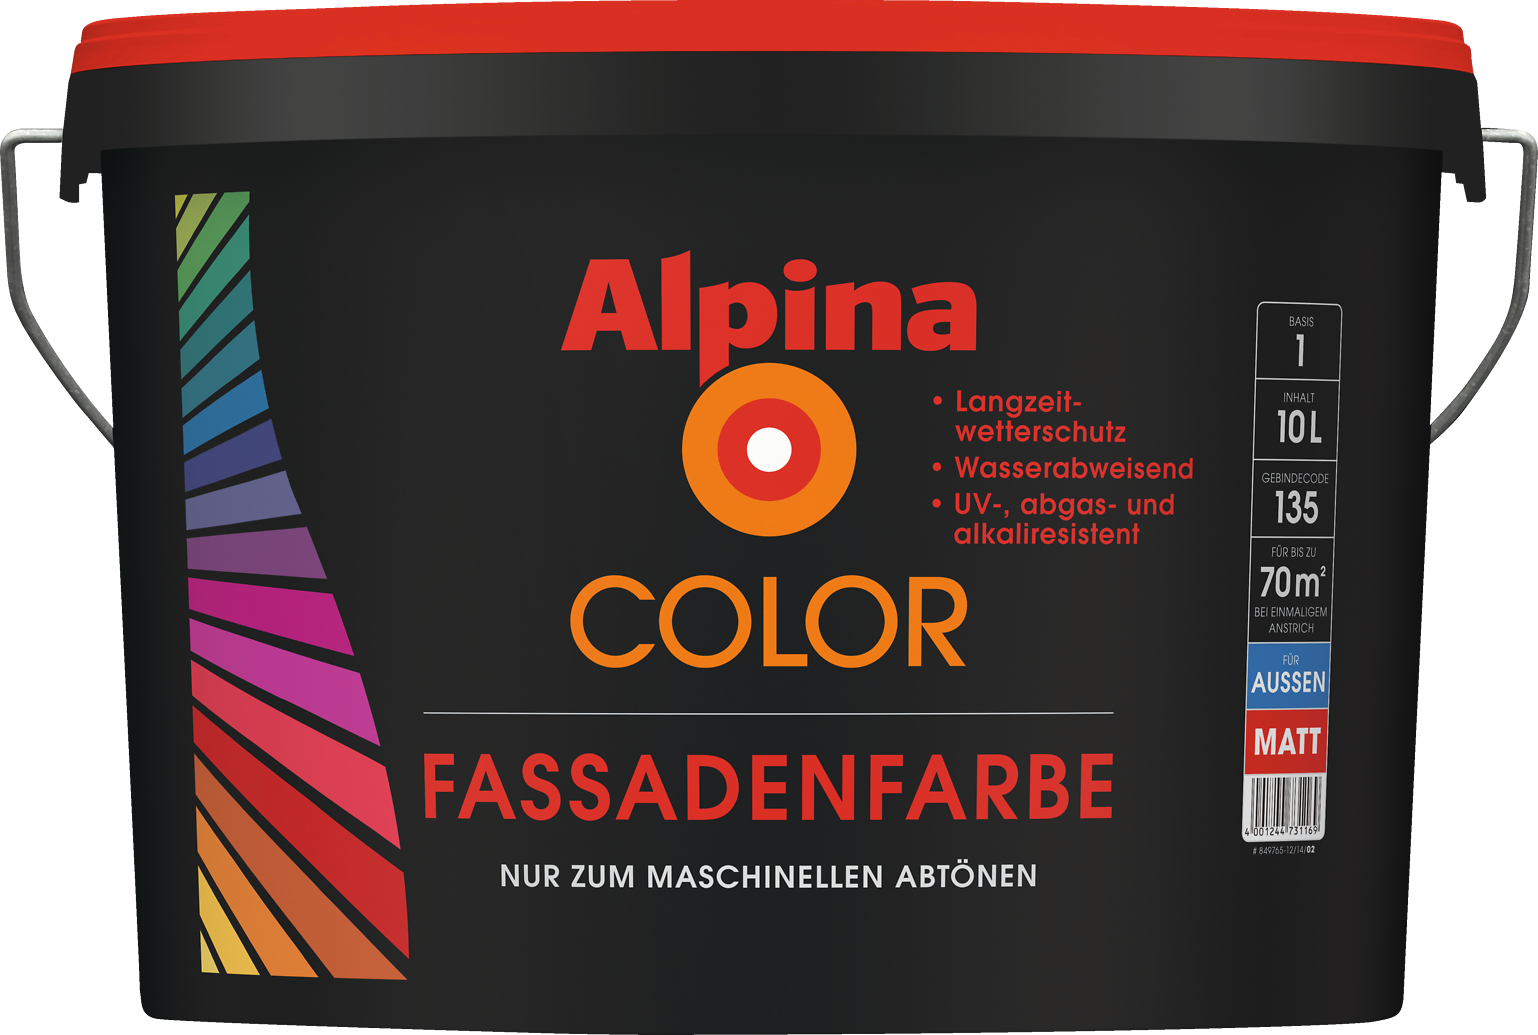 Haus farbe individuell mischen lassen alpina color - Farbmuster wandfarbe ...